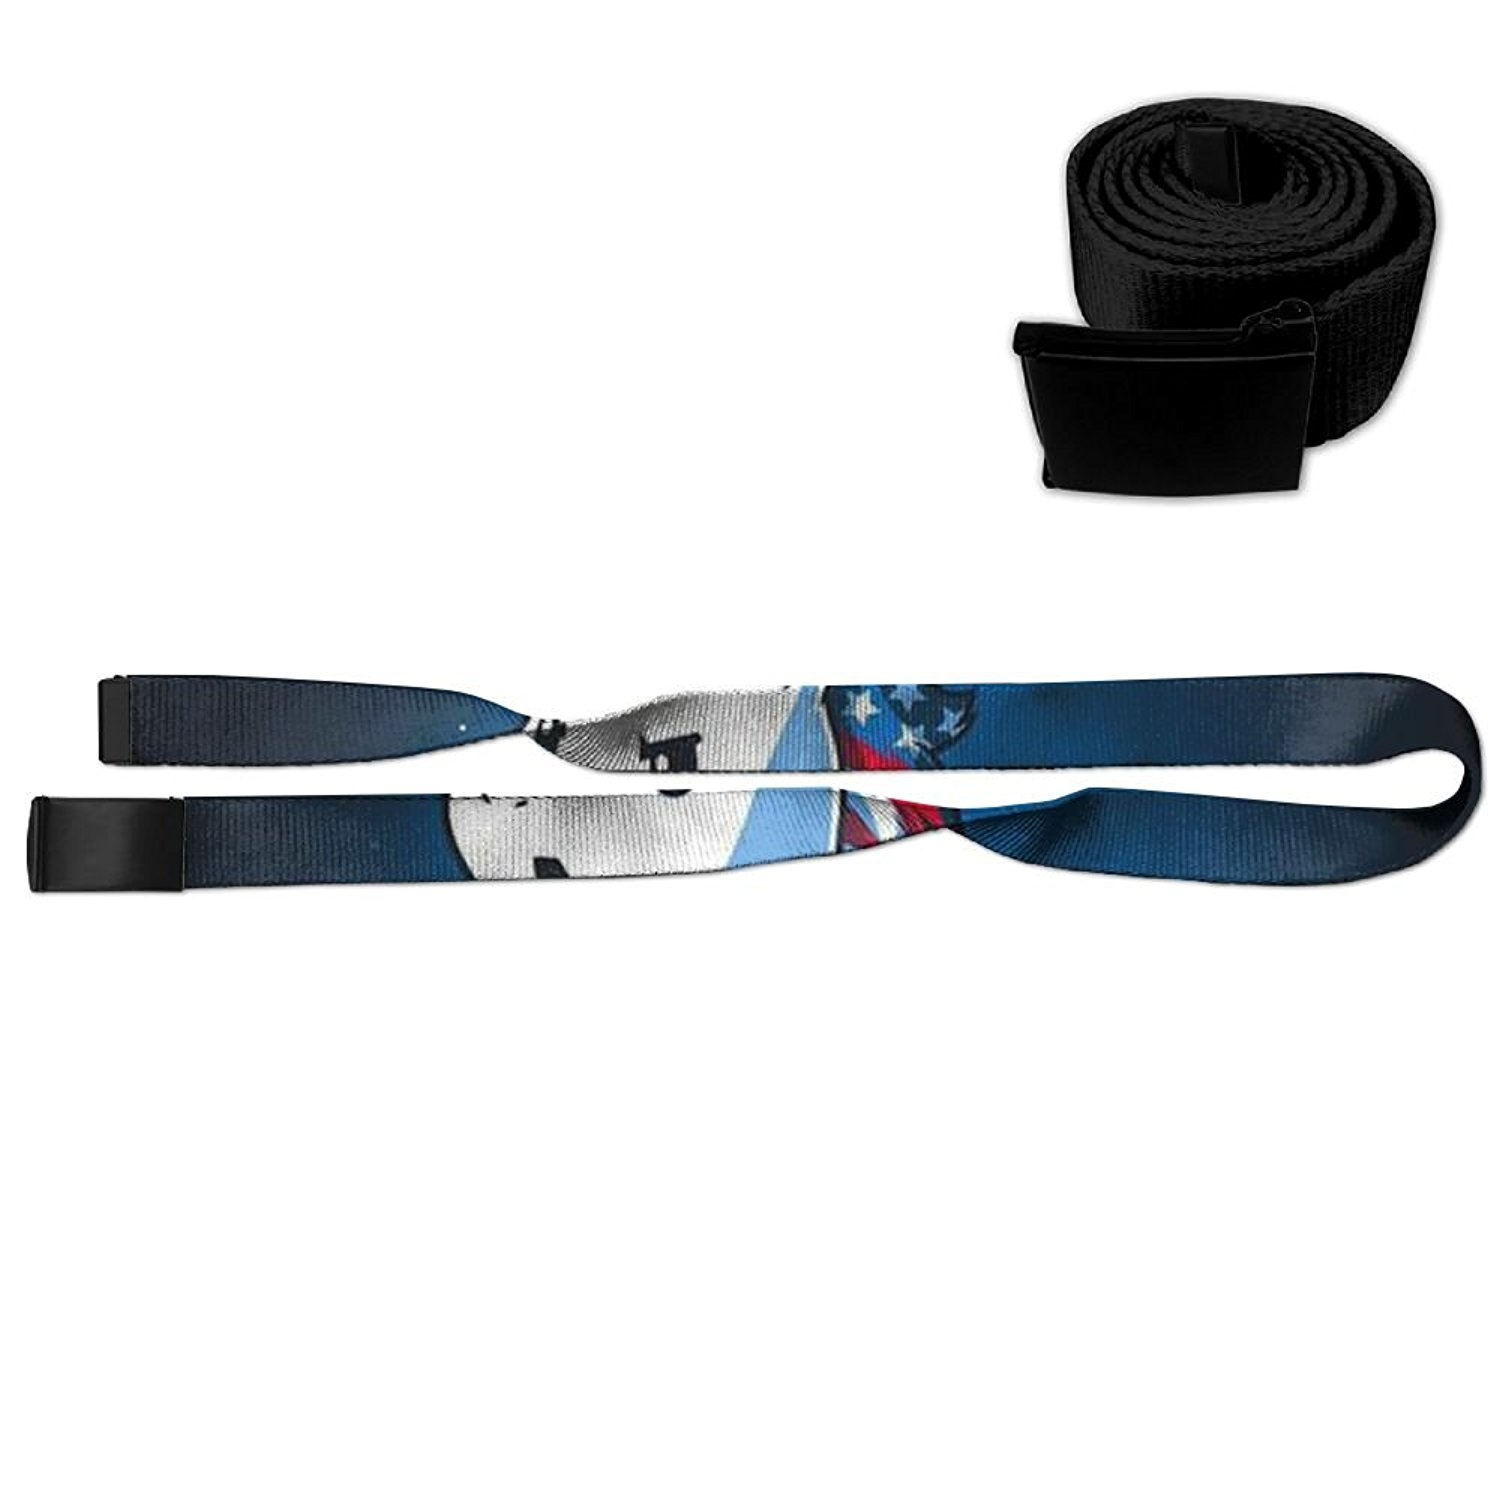 3a48c56fb2 Get Quotations · MIIKOCCUnicorn Printing Of 3D Graphics Of Adjustable  Waistband Metal Buckle Outdoor Leisure Belt